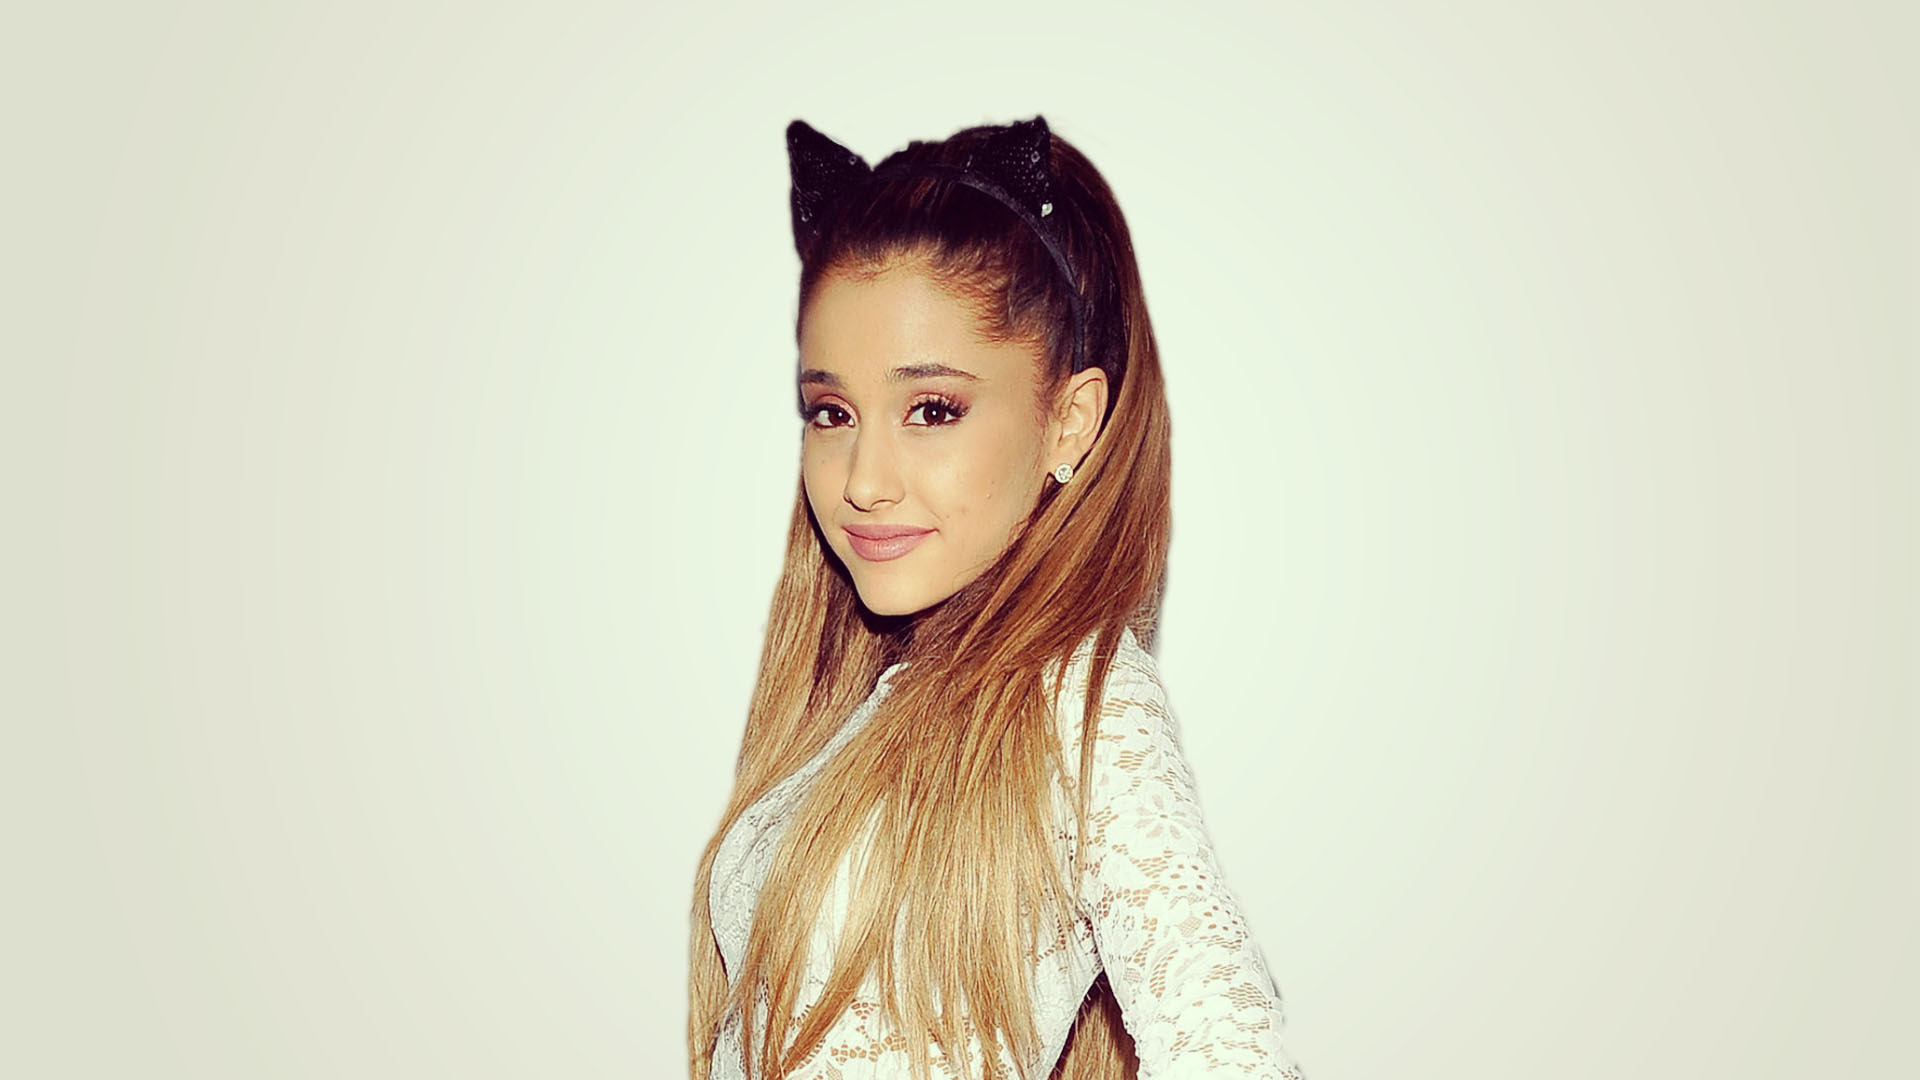 Ariana Grande HD Wallpapers for desktop download